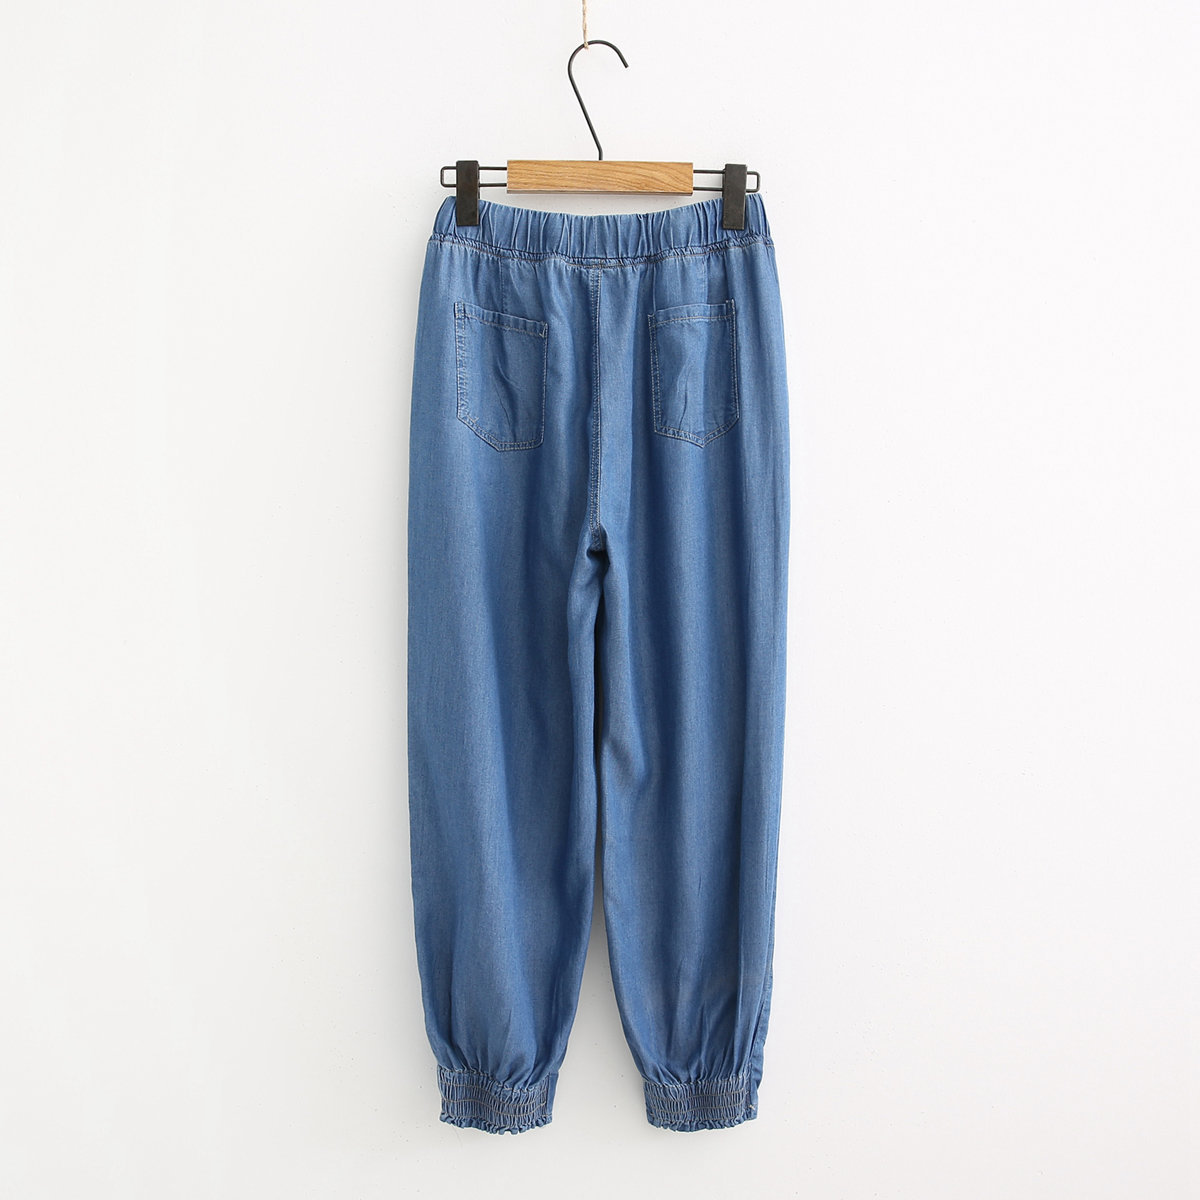 19 Summer New Style Casual Simple Korean-style Pumping Elastic Waist Loose-Fit Thin Cowboy Closing Harem Baggy Pants 8035